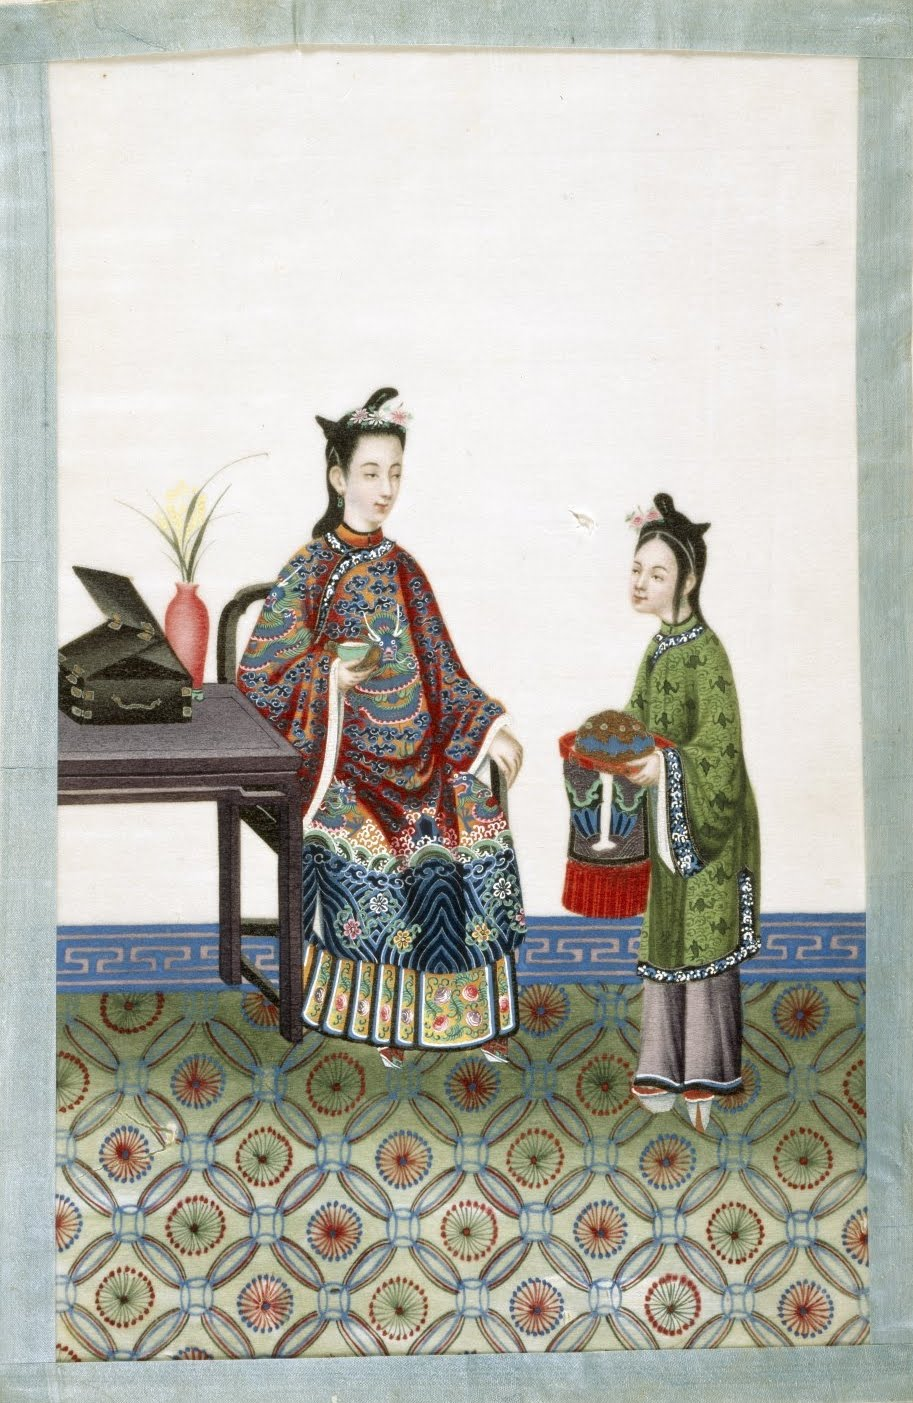 nobleman + servant in 19th century China